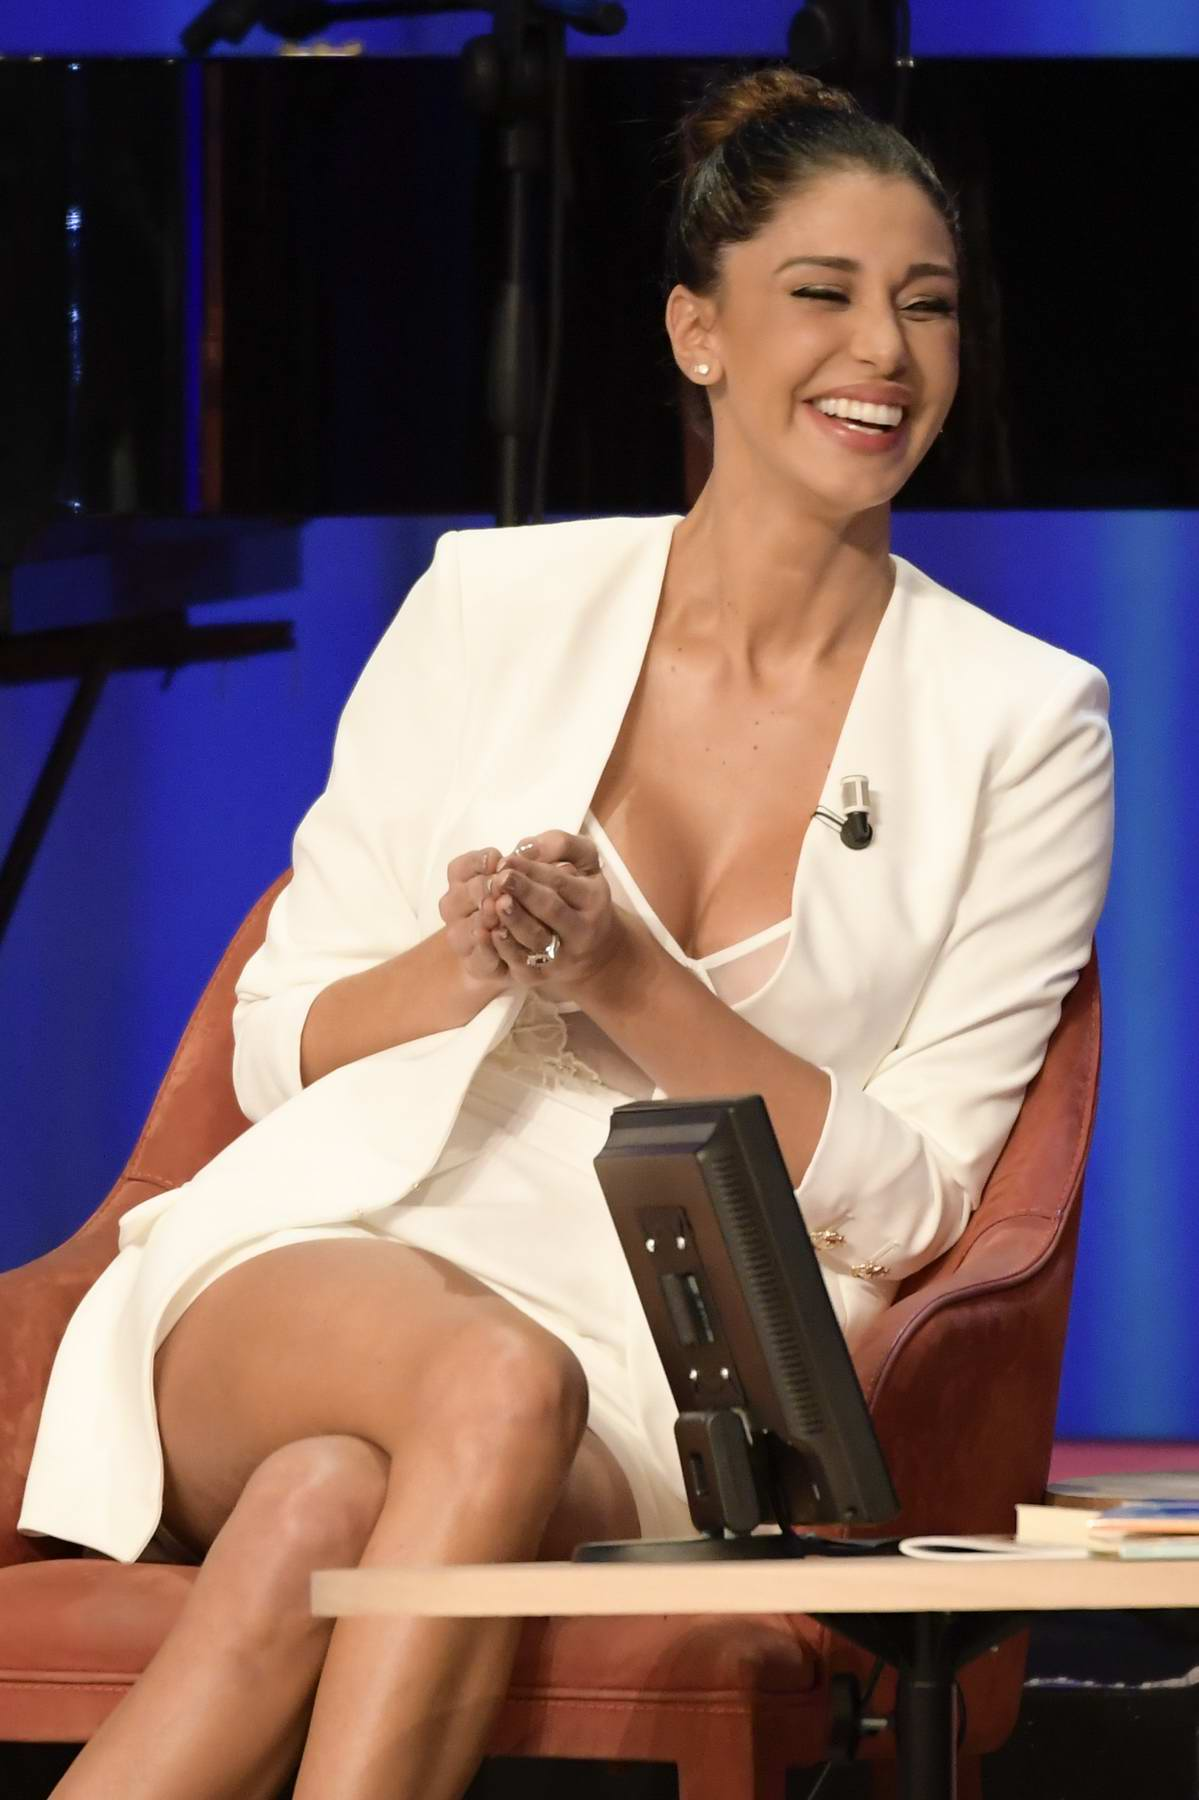 Belen Rodriguez appears on Maurizio Costanzo Show in Rome, Italy